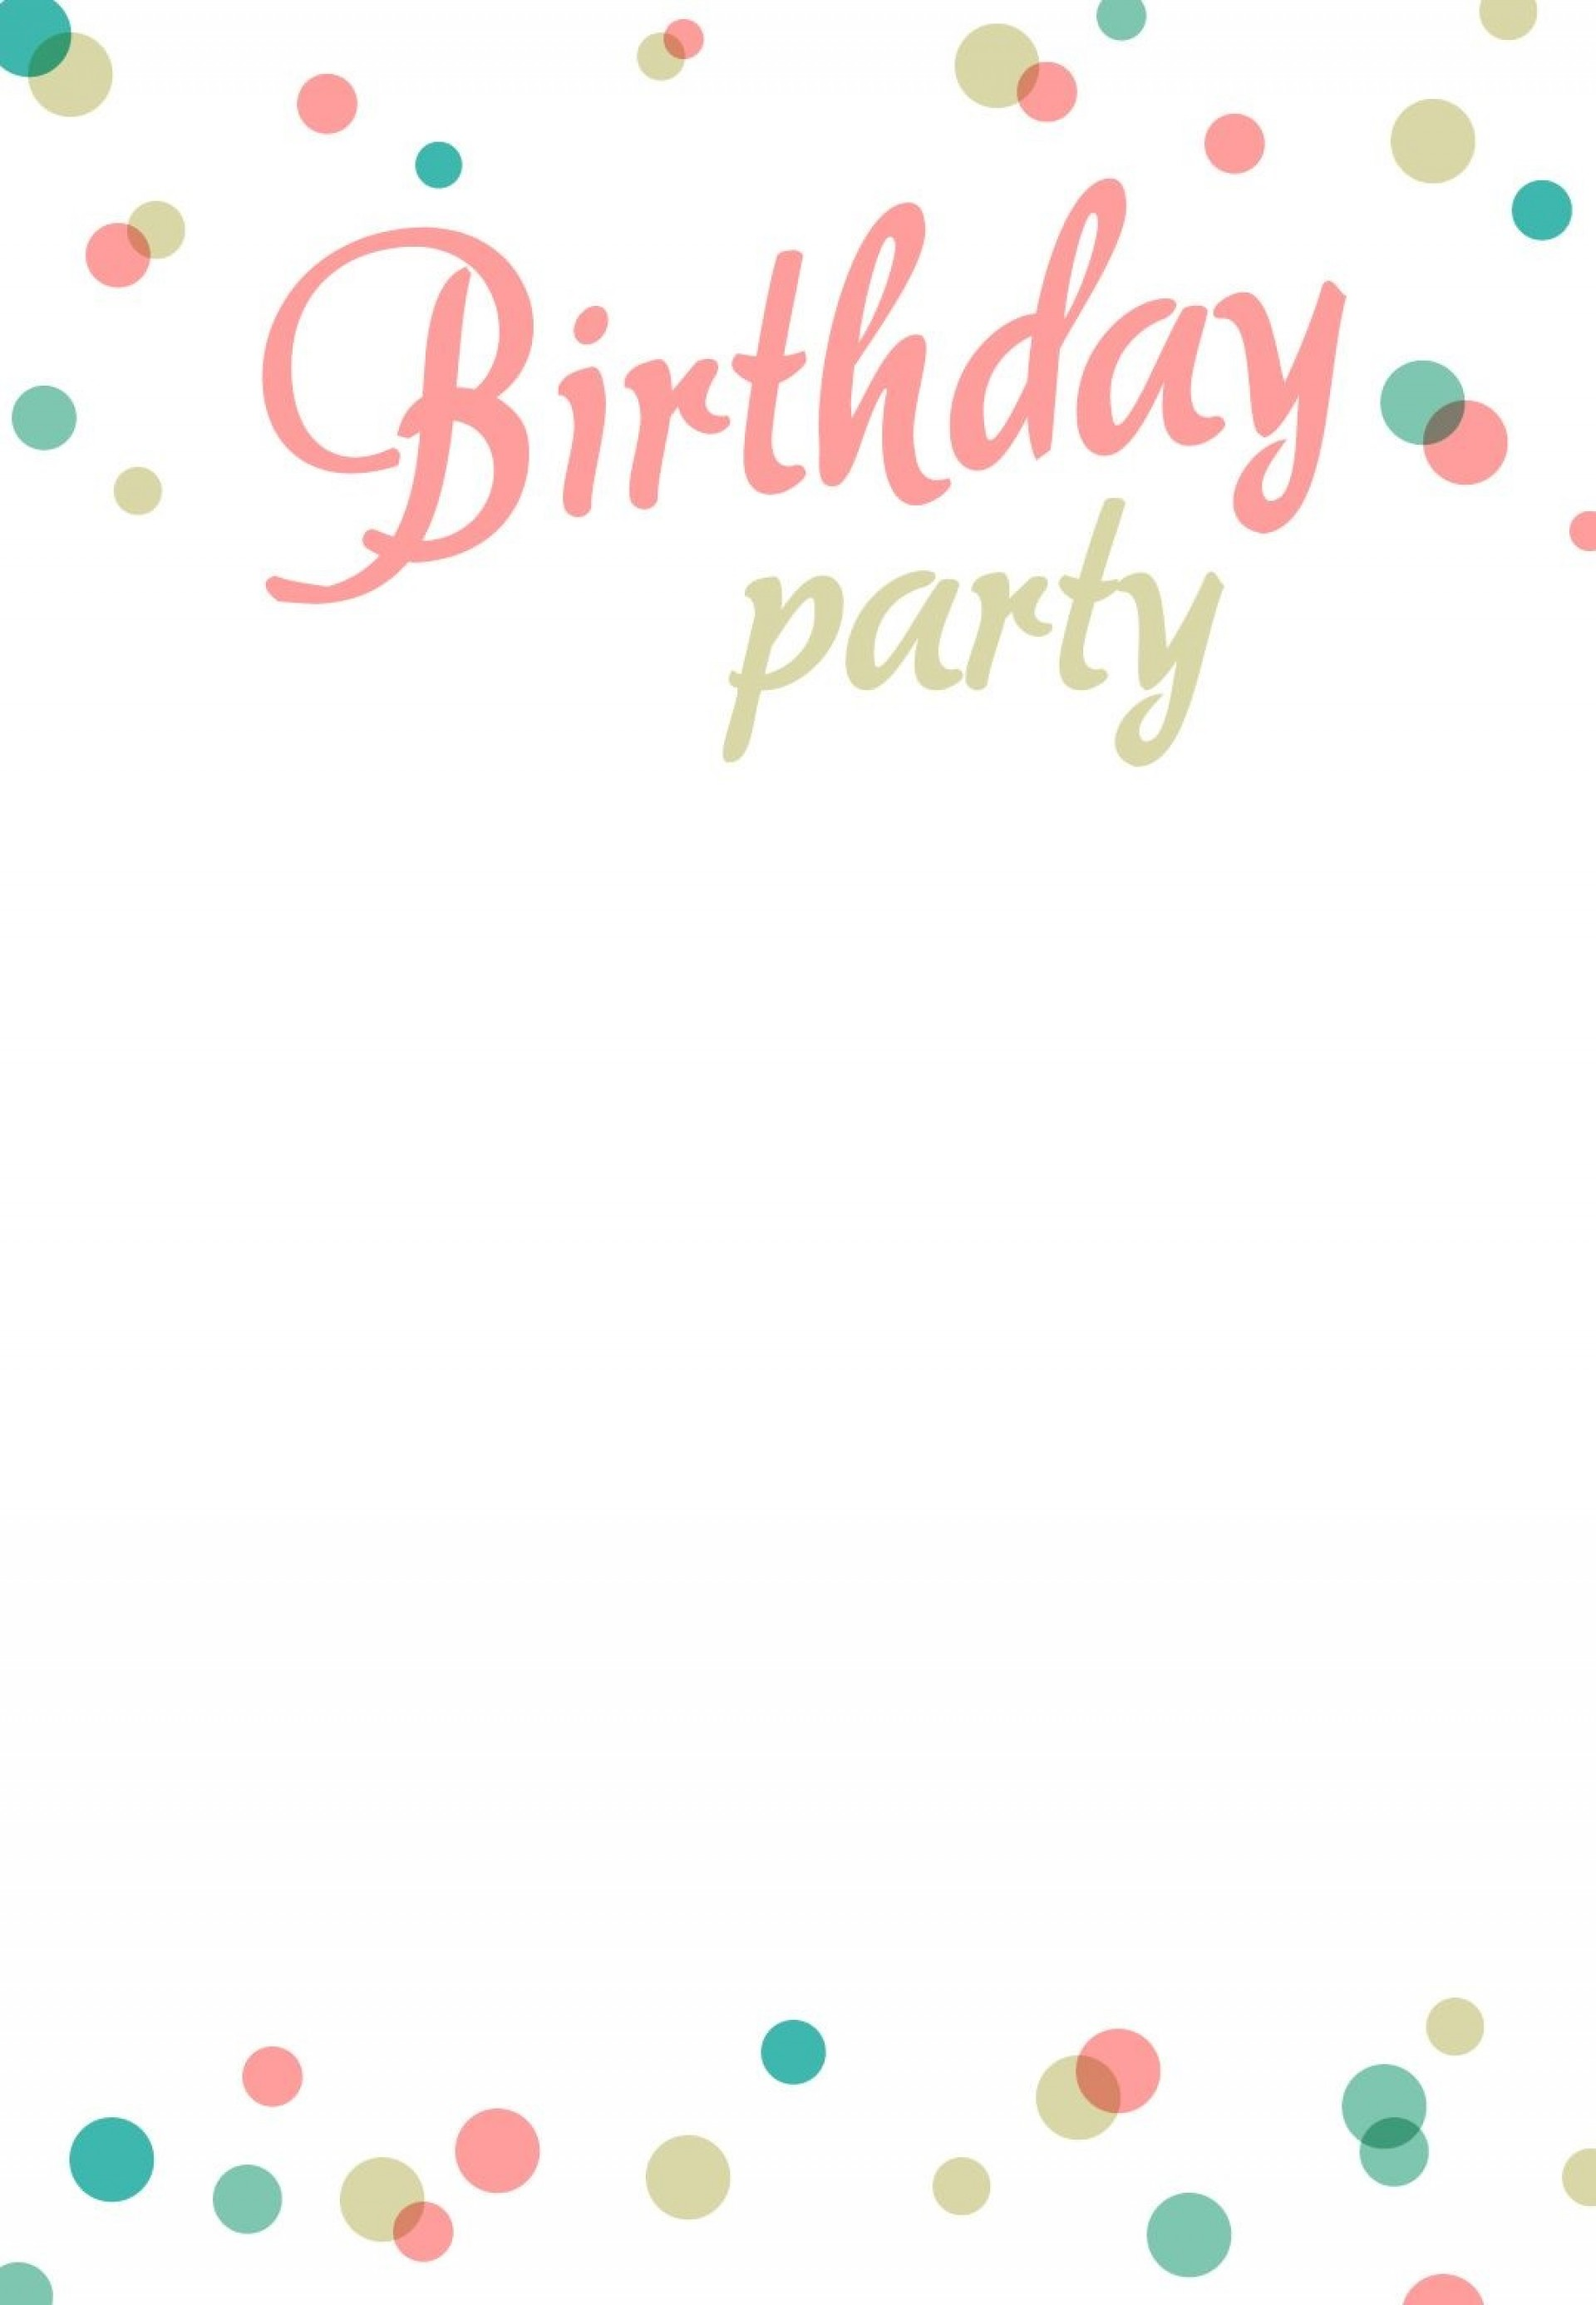 007 Wonderful Birthday Party Invitation Template Picture  Templates Google Doc 80th Free Download Online1920